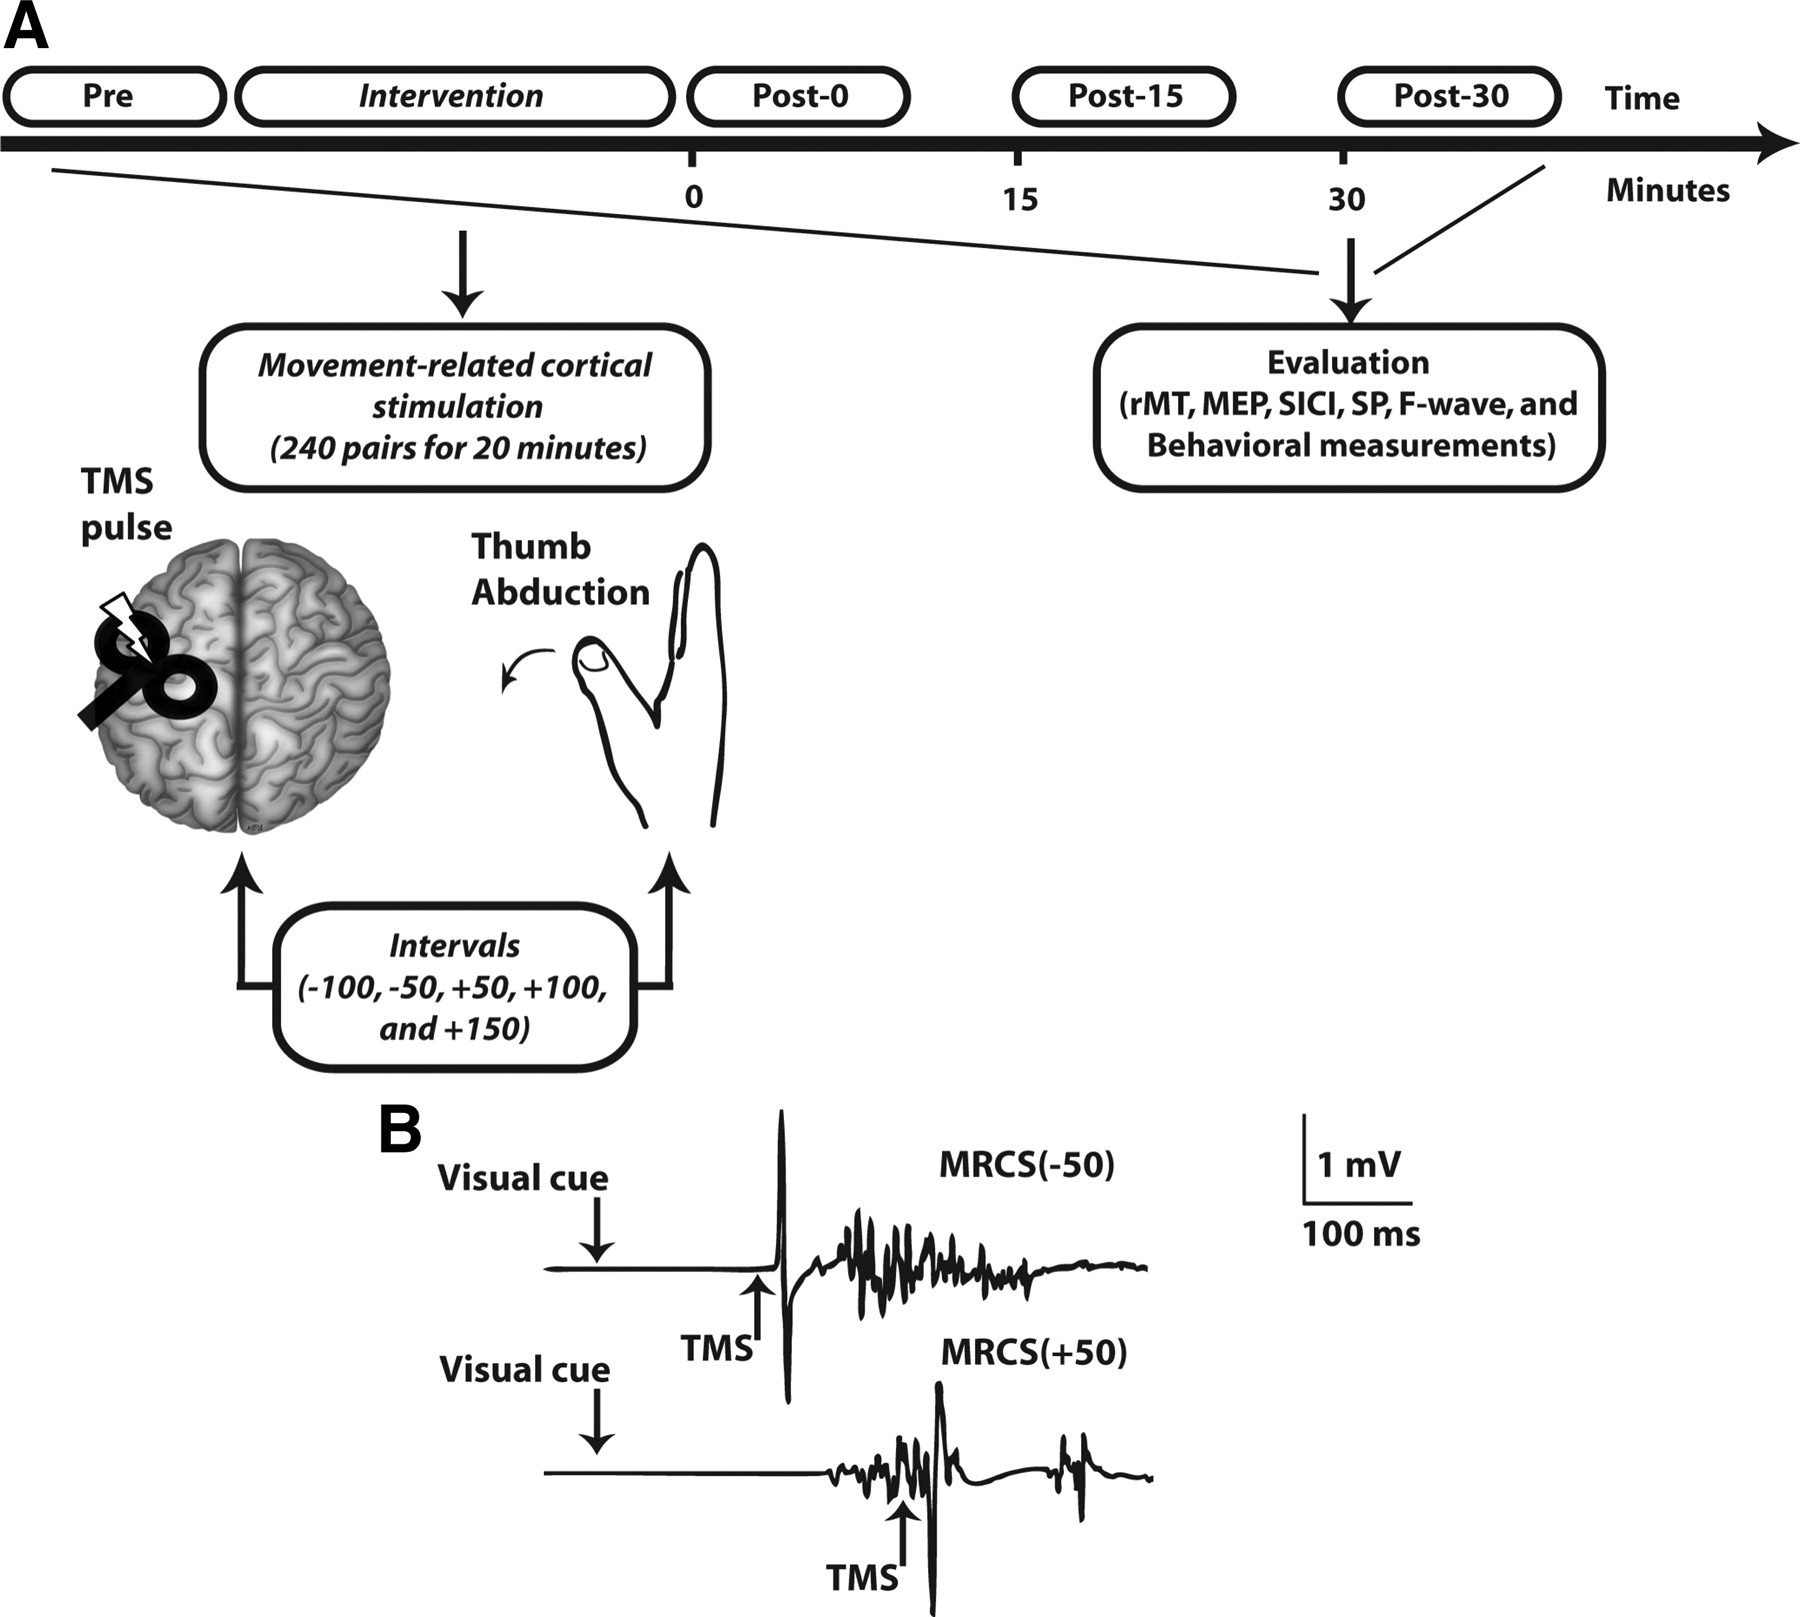 Movement Related Cortical Stimulation Can Induce Human Motor Circuits 8085 Projects Blog Archive Heart Rate Monitor Circuit Download Figure